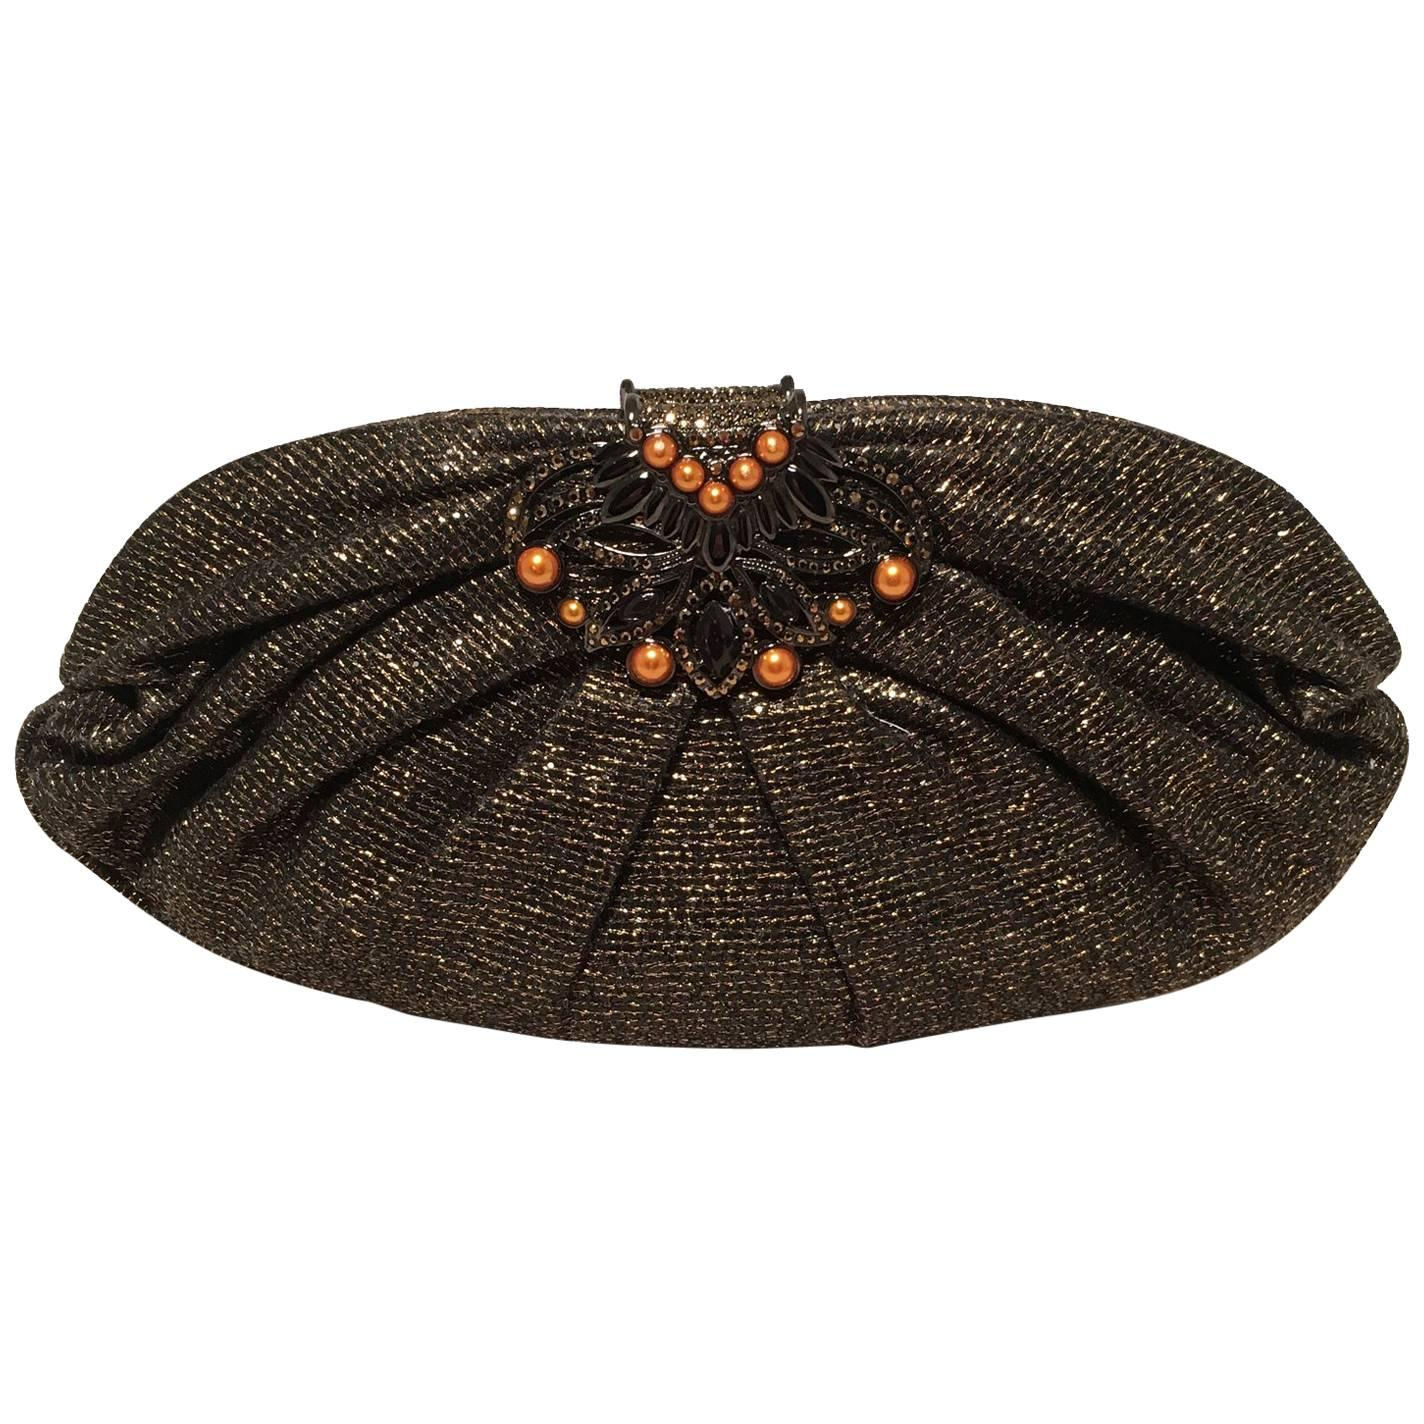 Judith Leiber Black And Gold Woven Pearl Embellished Clutch HazCl